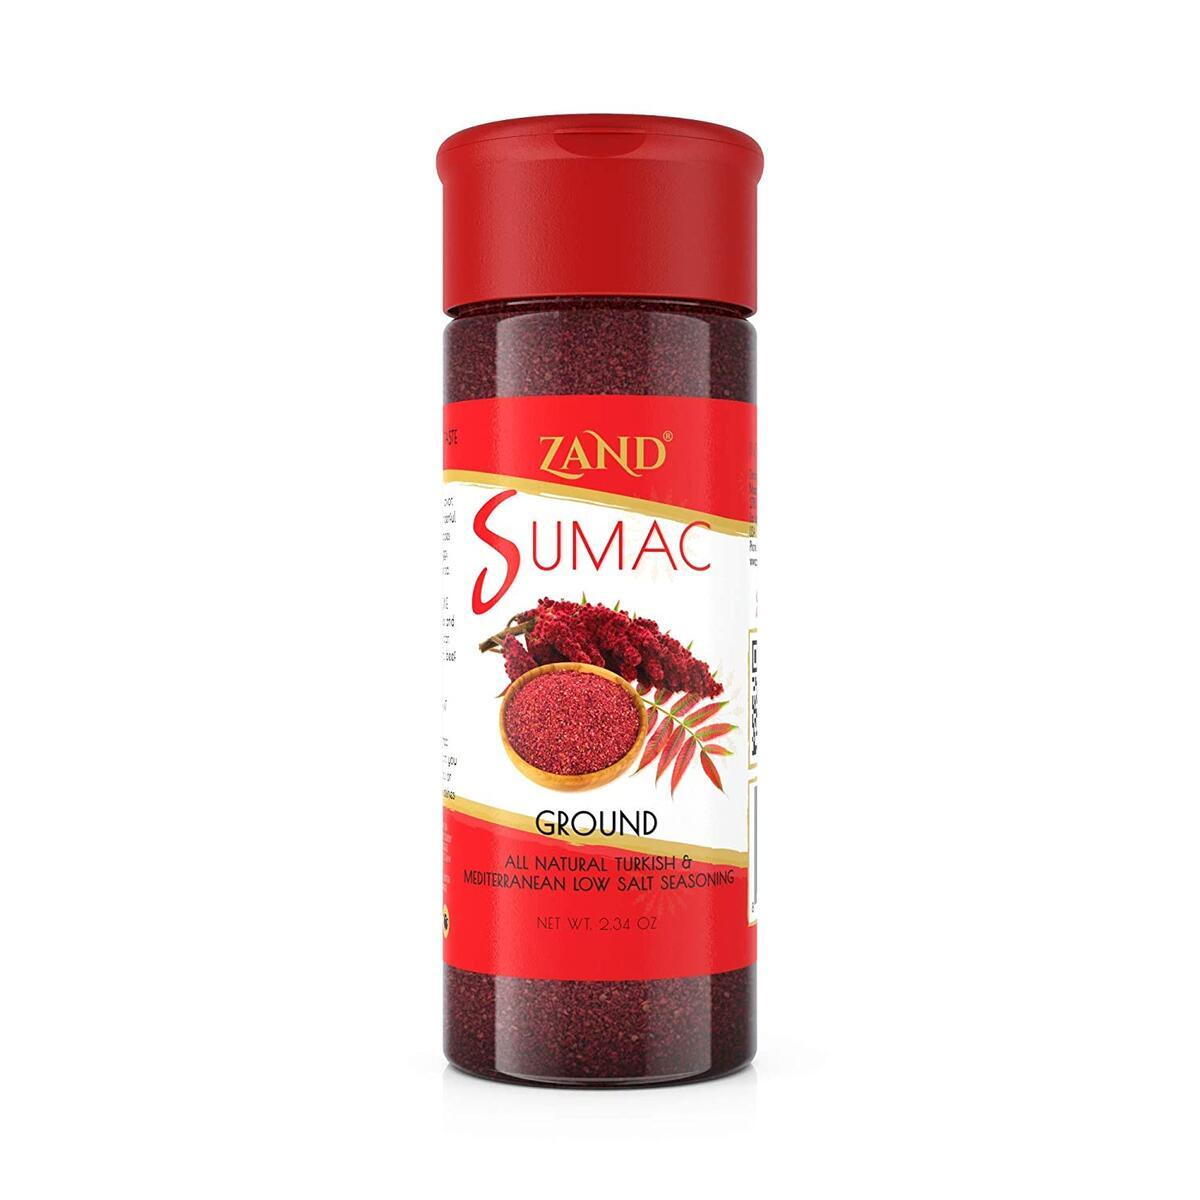 Zand Ground Sumac Spice 2.1oz - All Natural Turkish and Mediterranean Low Salt Seasoning with Robust Flavor and Deep Red Color for Garnish; Flavors Meats, Seafood, Poultry, Grains, Vegetables and More